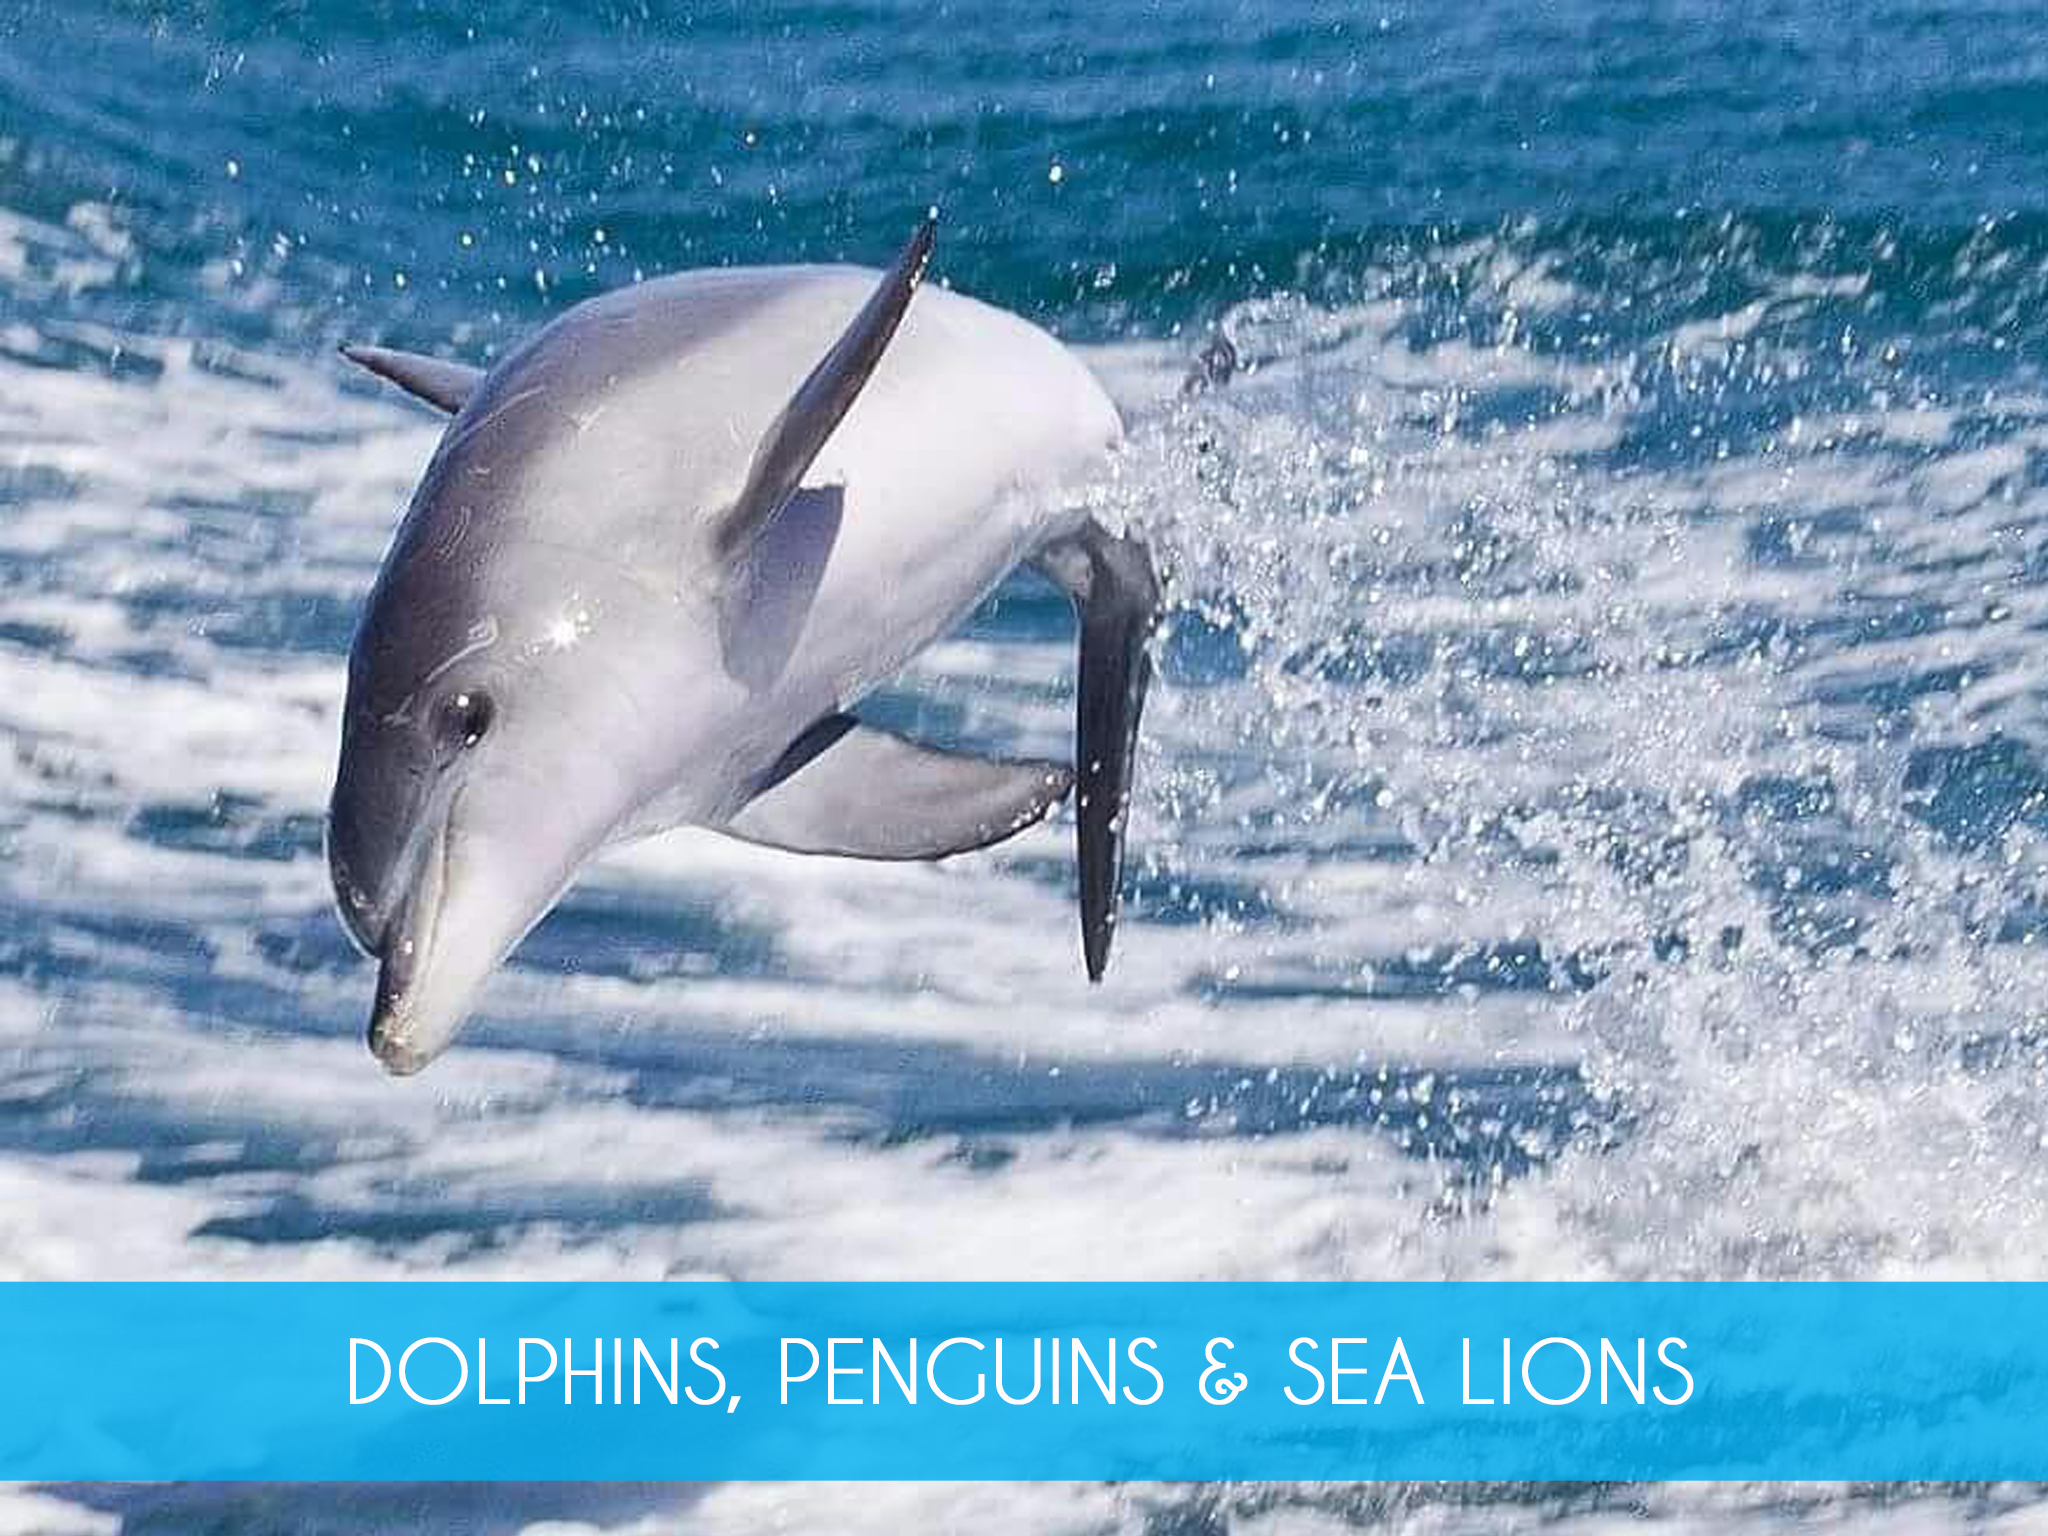 Adventure Cruise   Get up close with the dolphins & enjoy the exhilarating ride on our 90 minute Adventure Cruise. We also take in the spectacular islands, nesting sea birds & sea lions. Includes return ferry from Penguin Island.  Adults from $60  MORE INFO